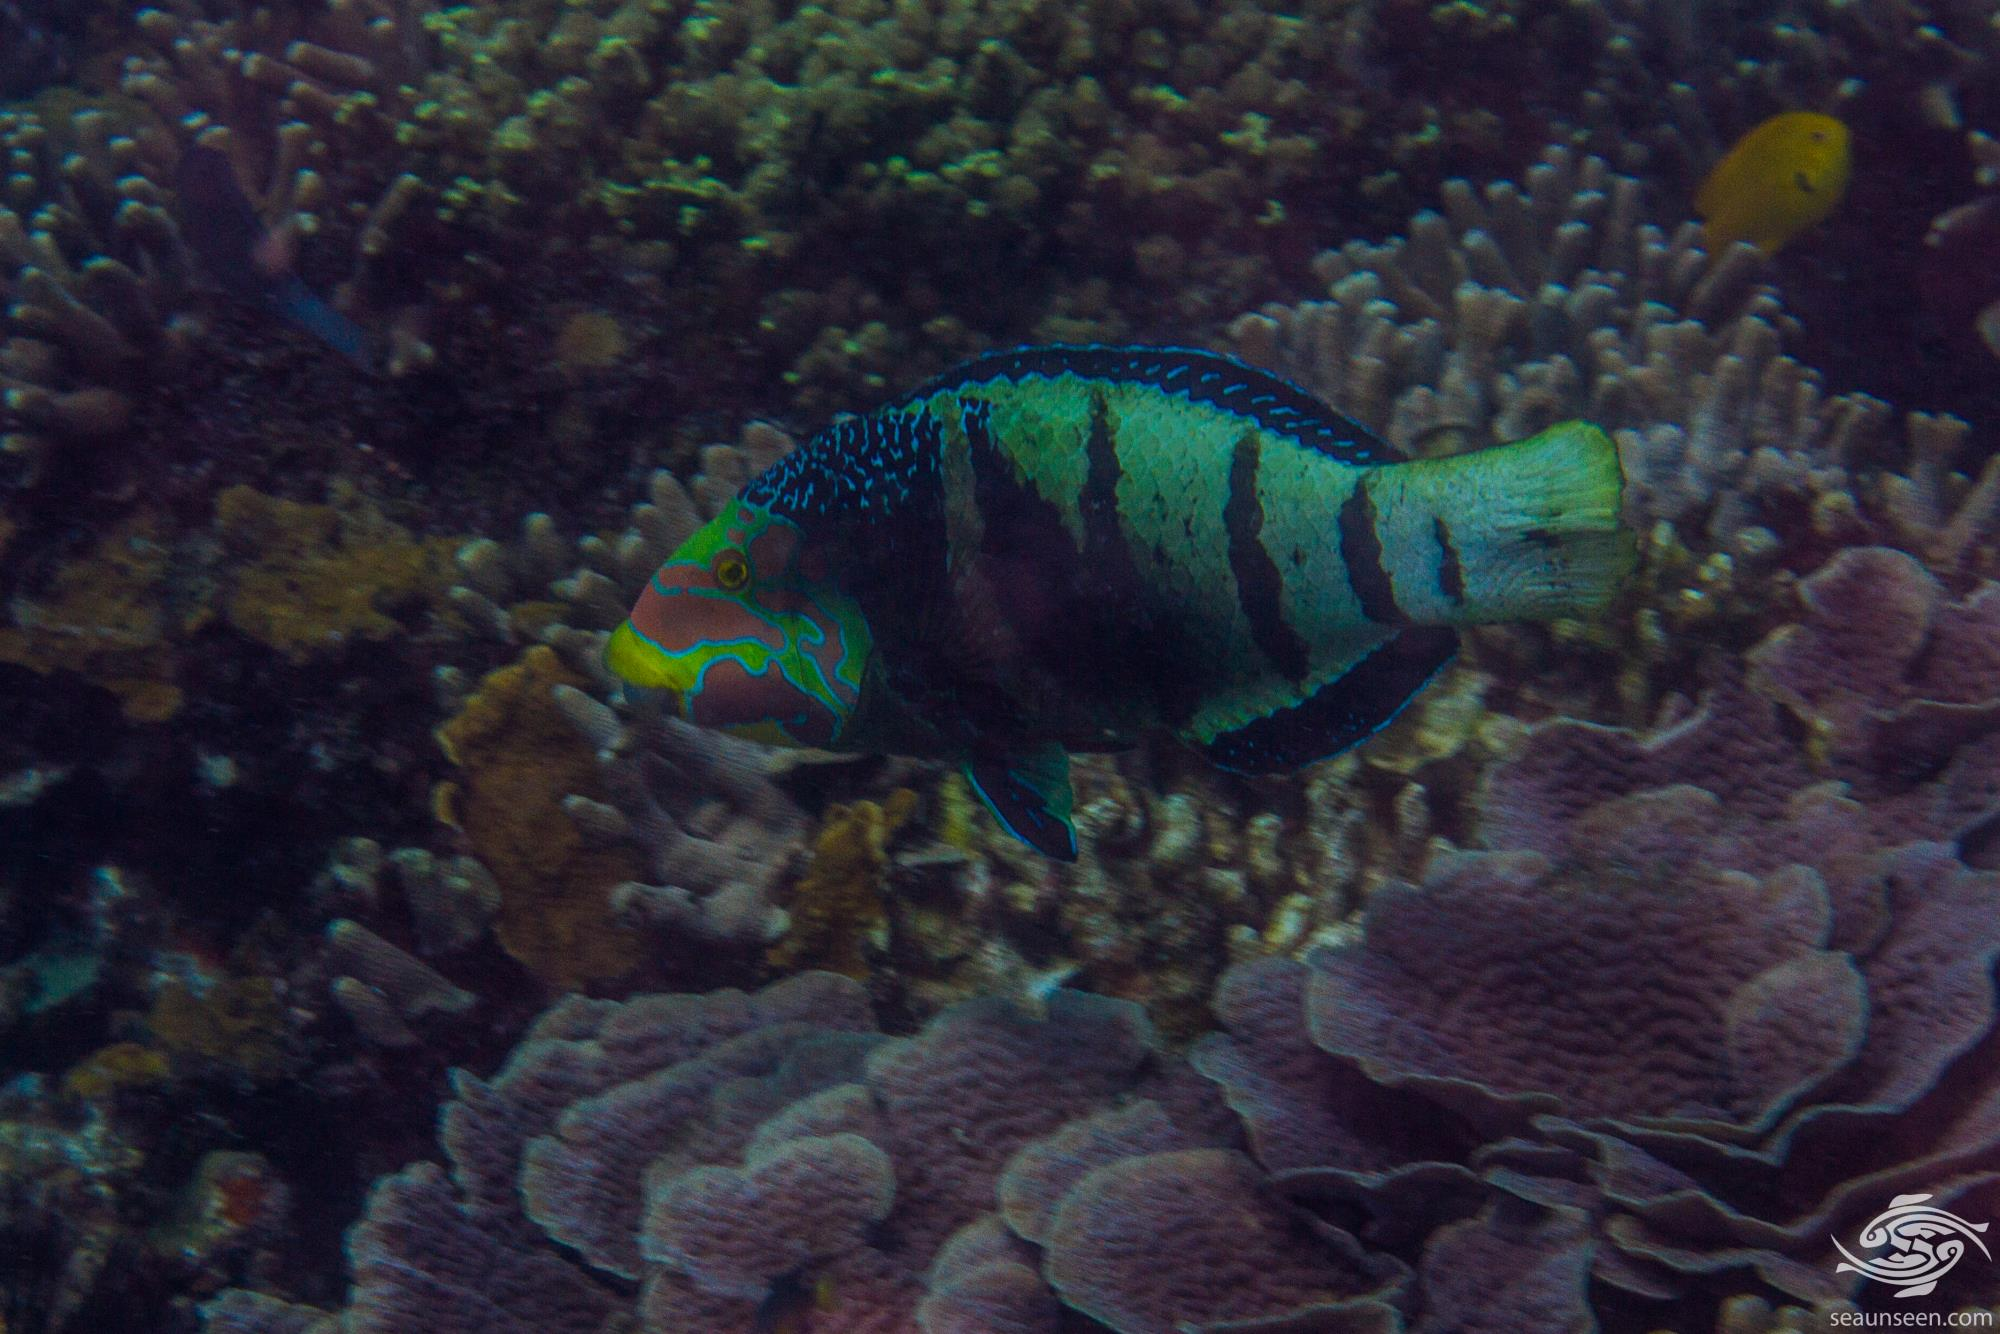 Queen wrasse (Coris Formosa) is also known as the Queen Coris and the Formosa wrasse